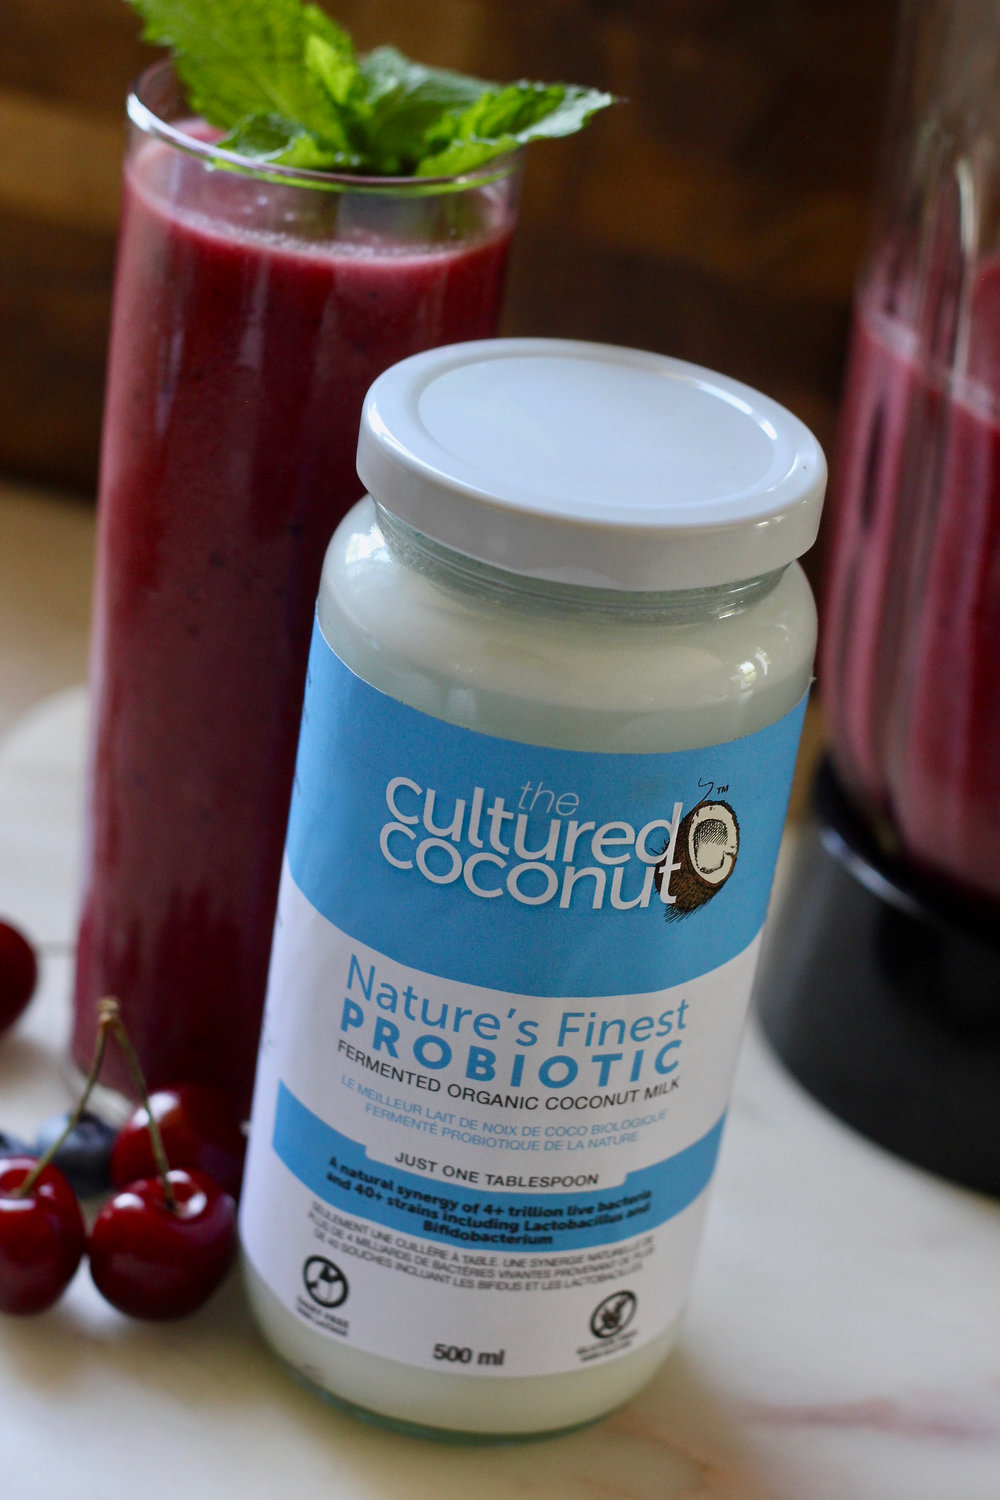 The Cultured Coconut Probiotic